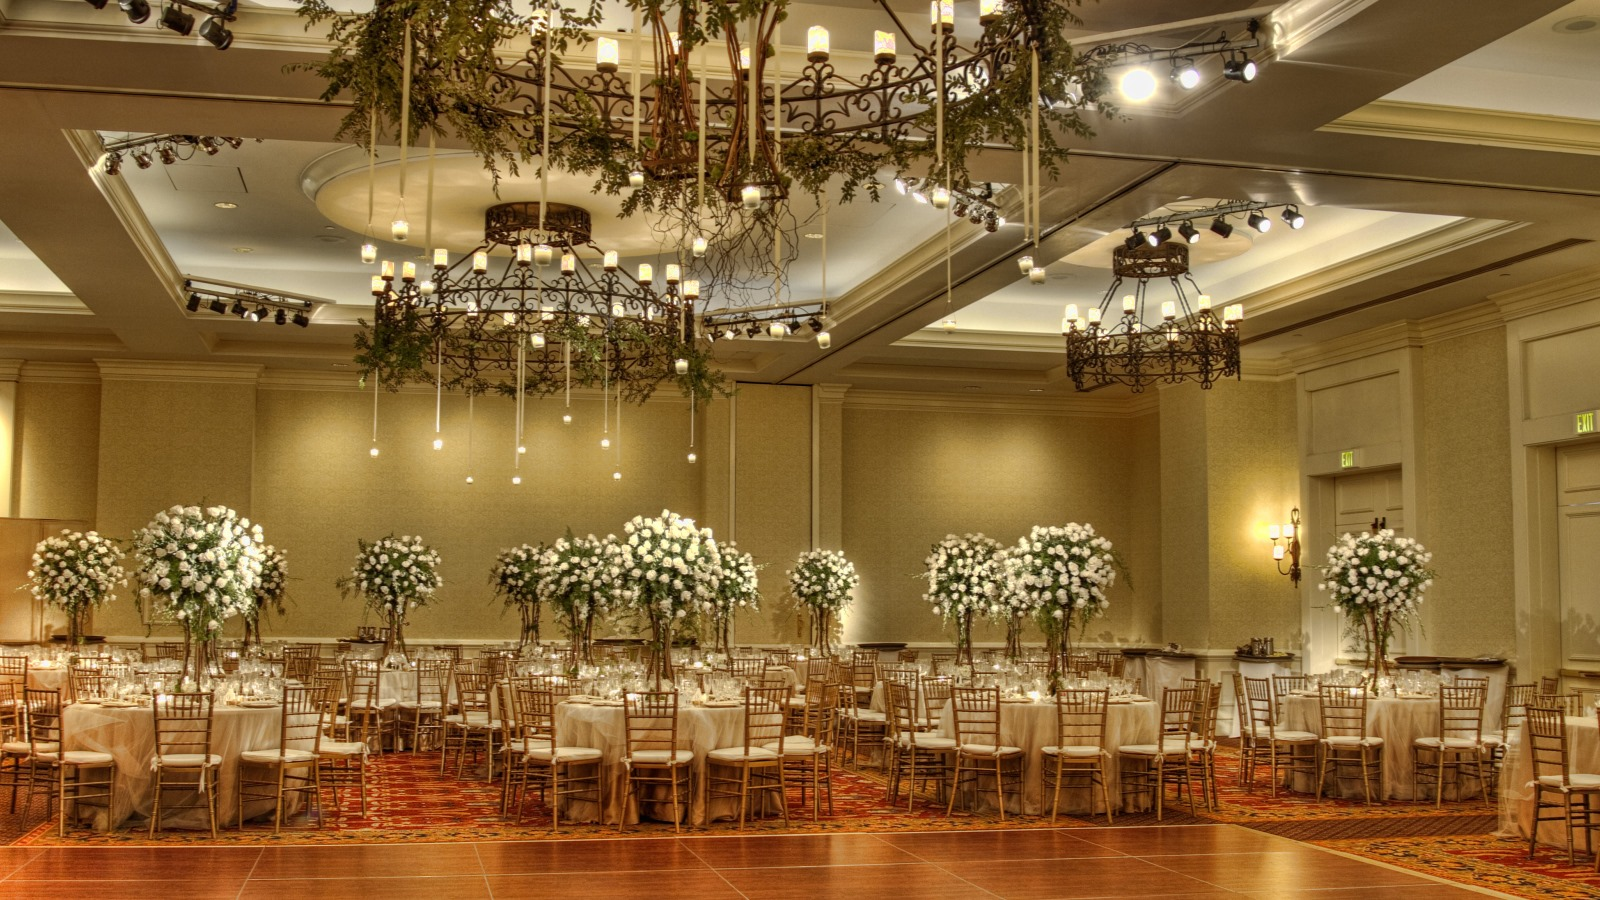 San Antonio Wedding Venues - Ballroom